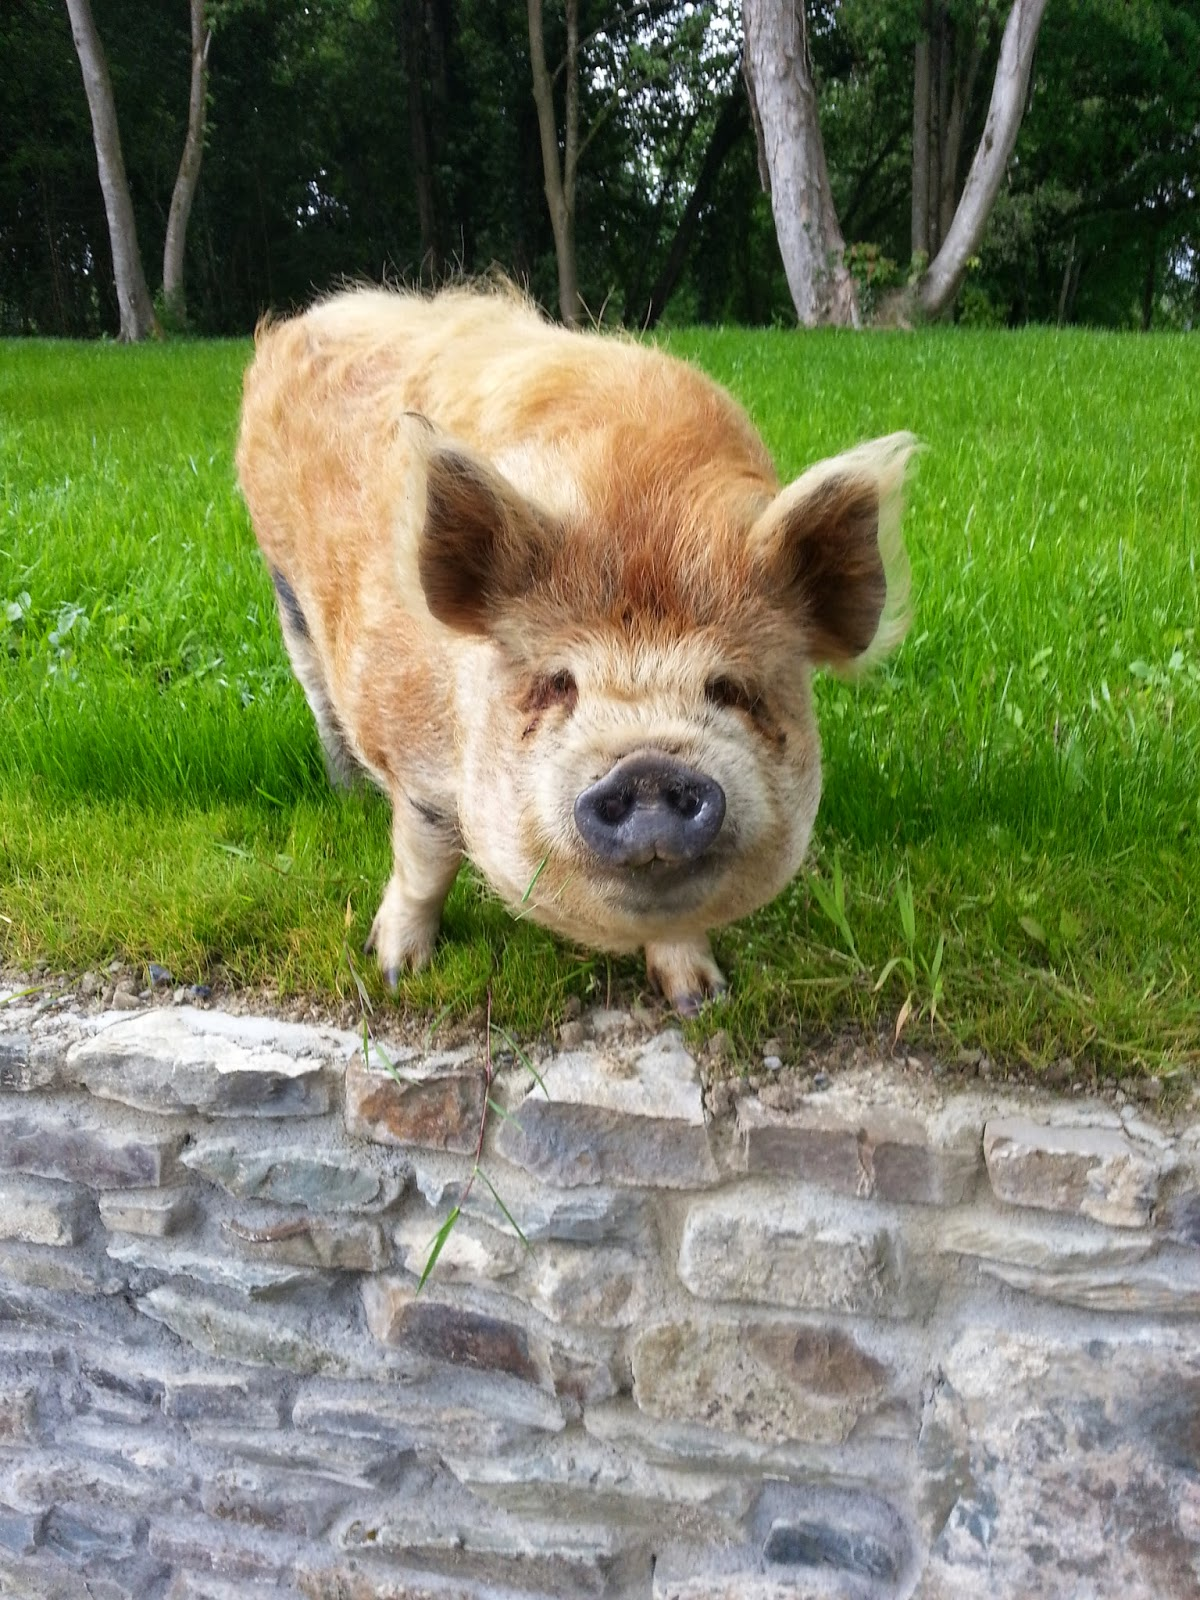 Picture of kune-kune pig